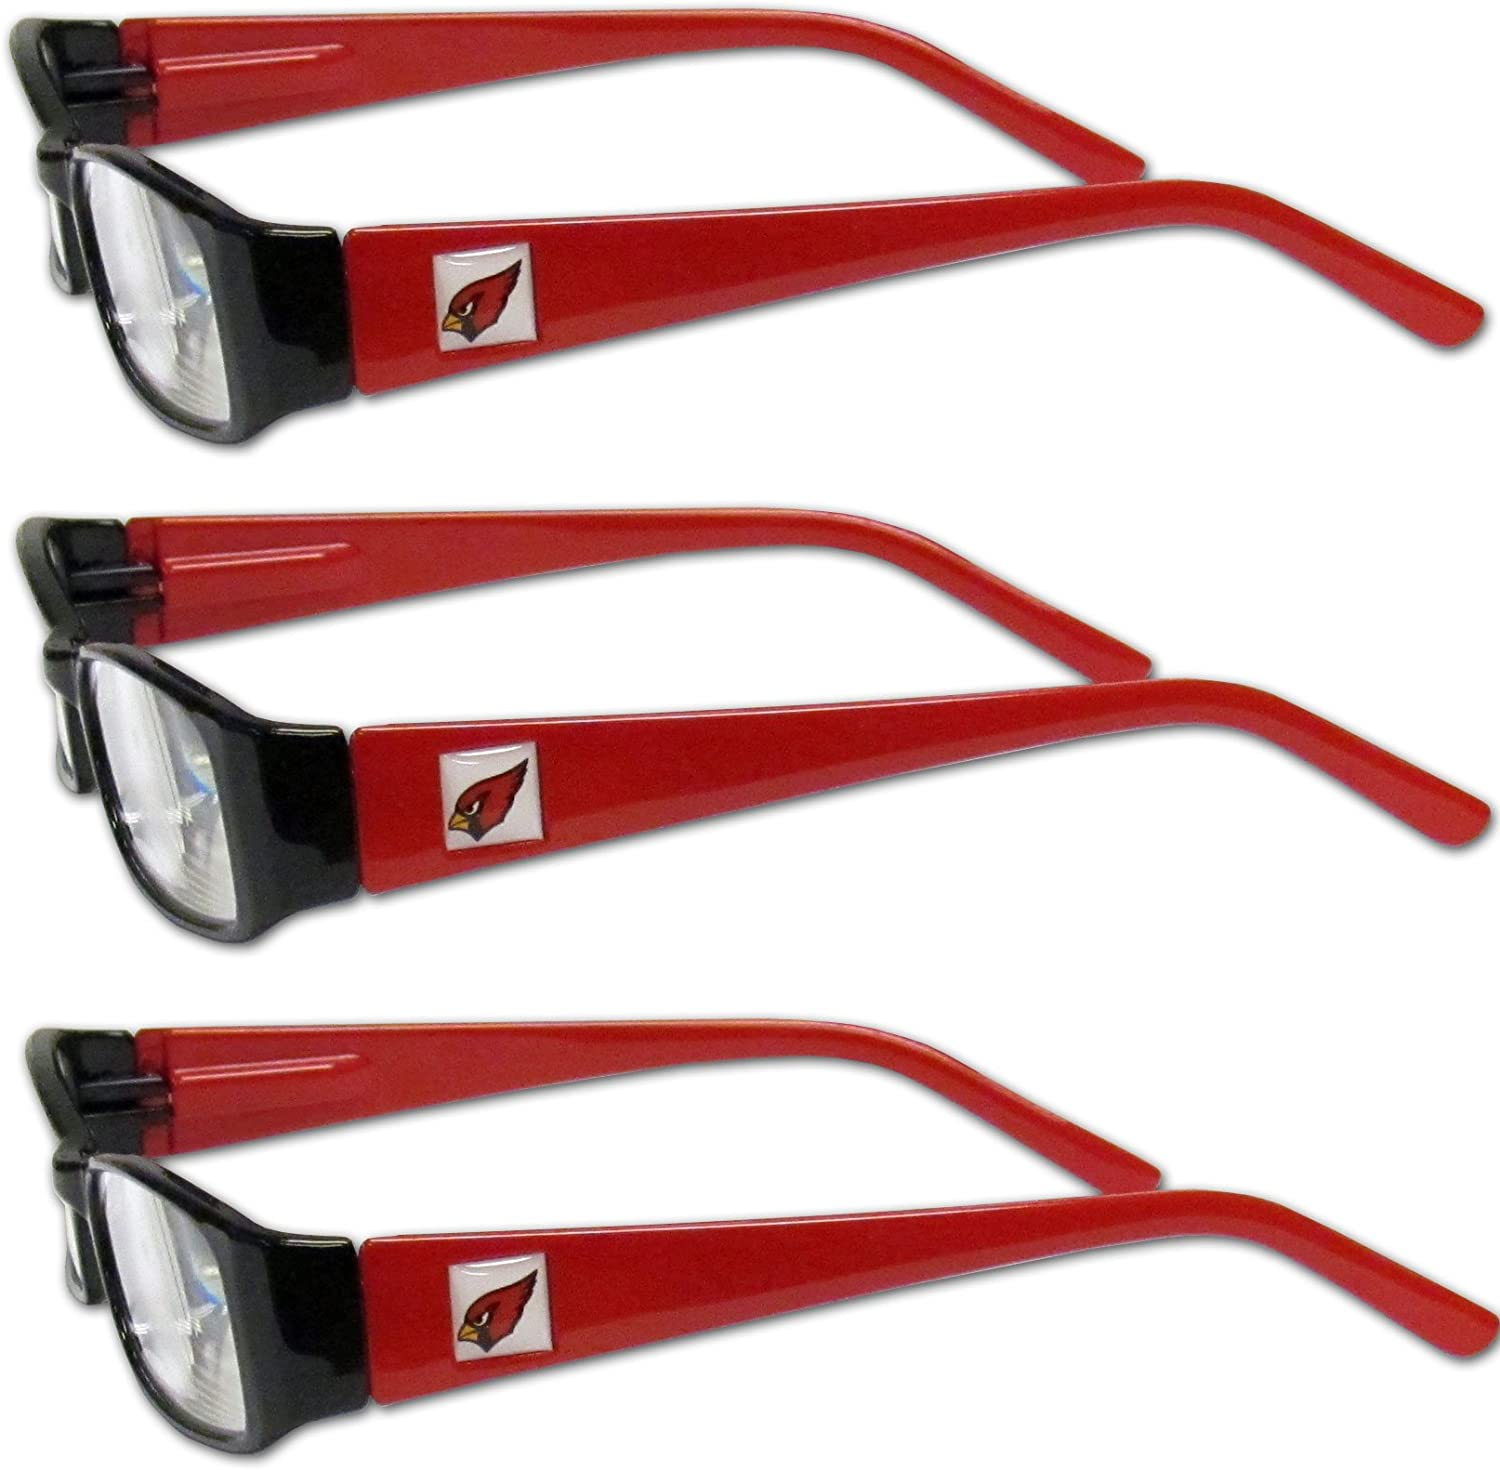 931d9f21 NFL Arizona Adult Reading Glasses (3Pack), Red, Power +1.50 Reading ...